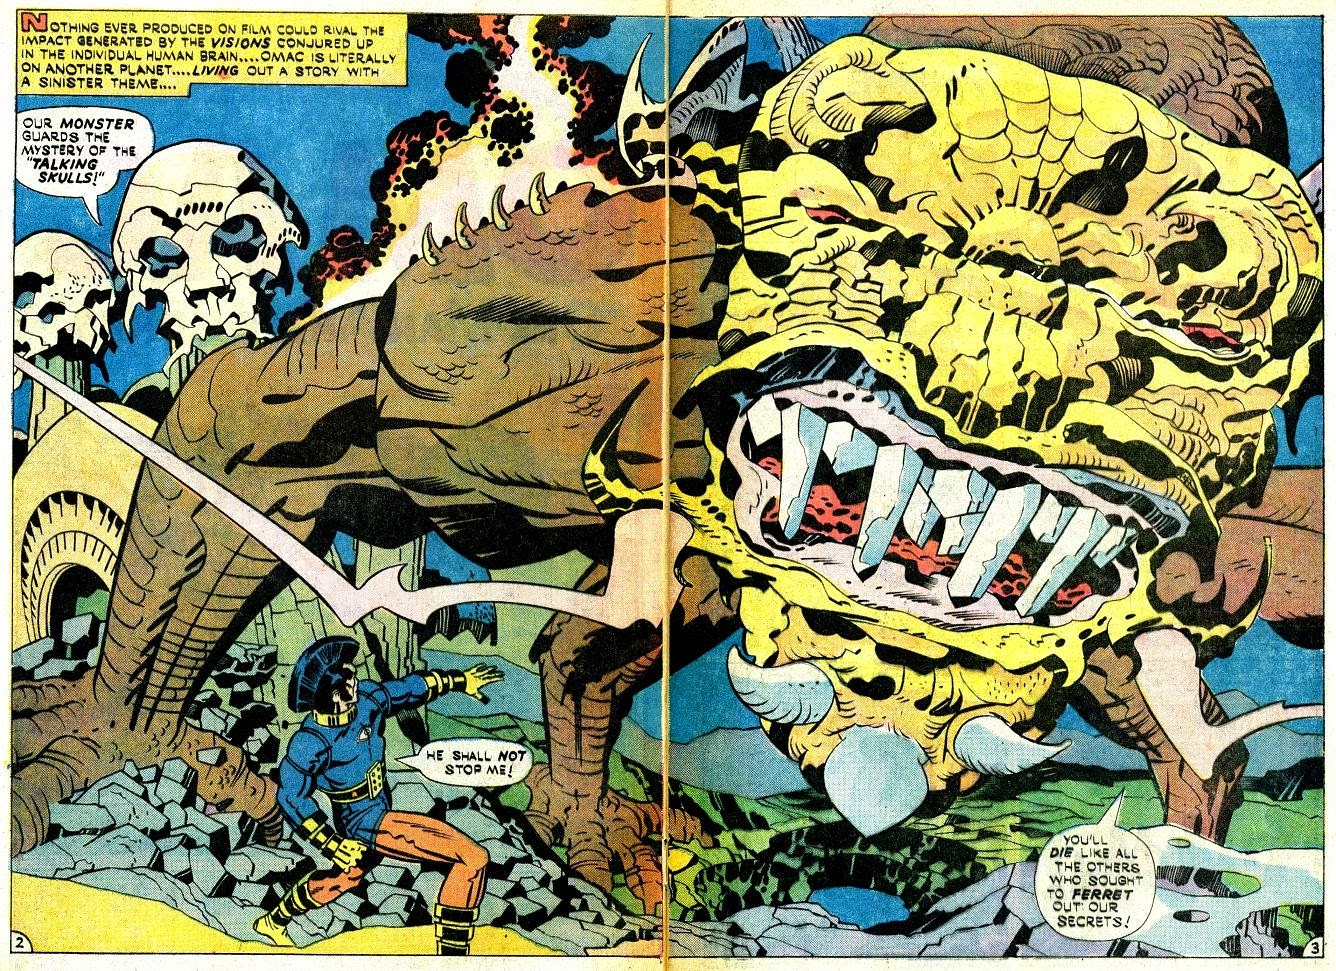 Jack Kirby's Omac review